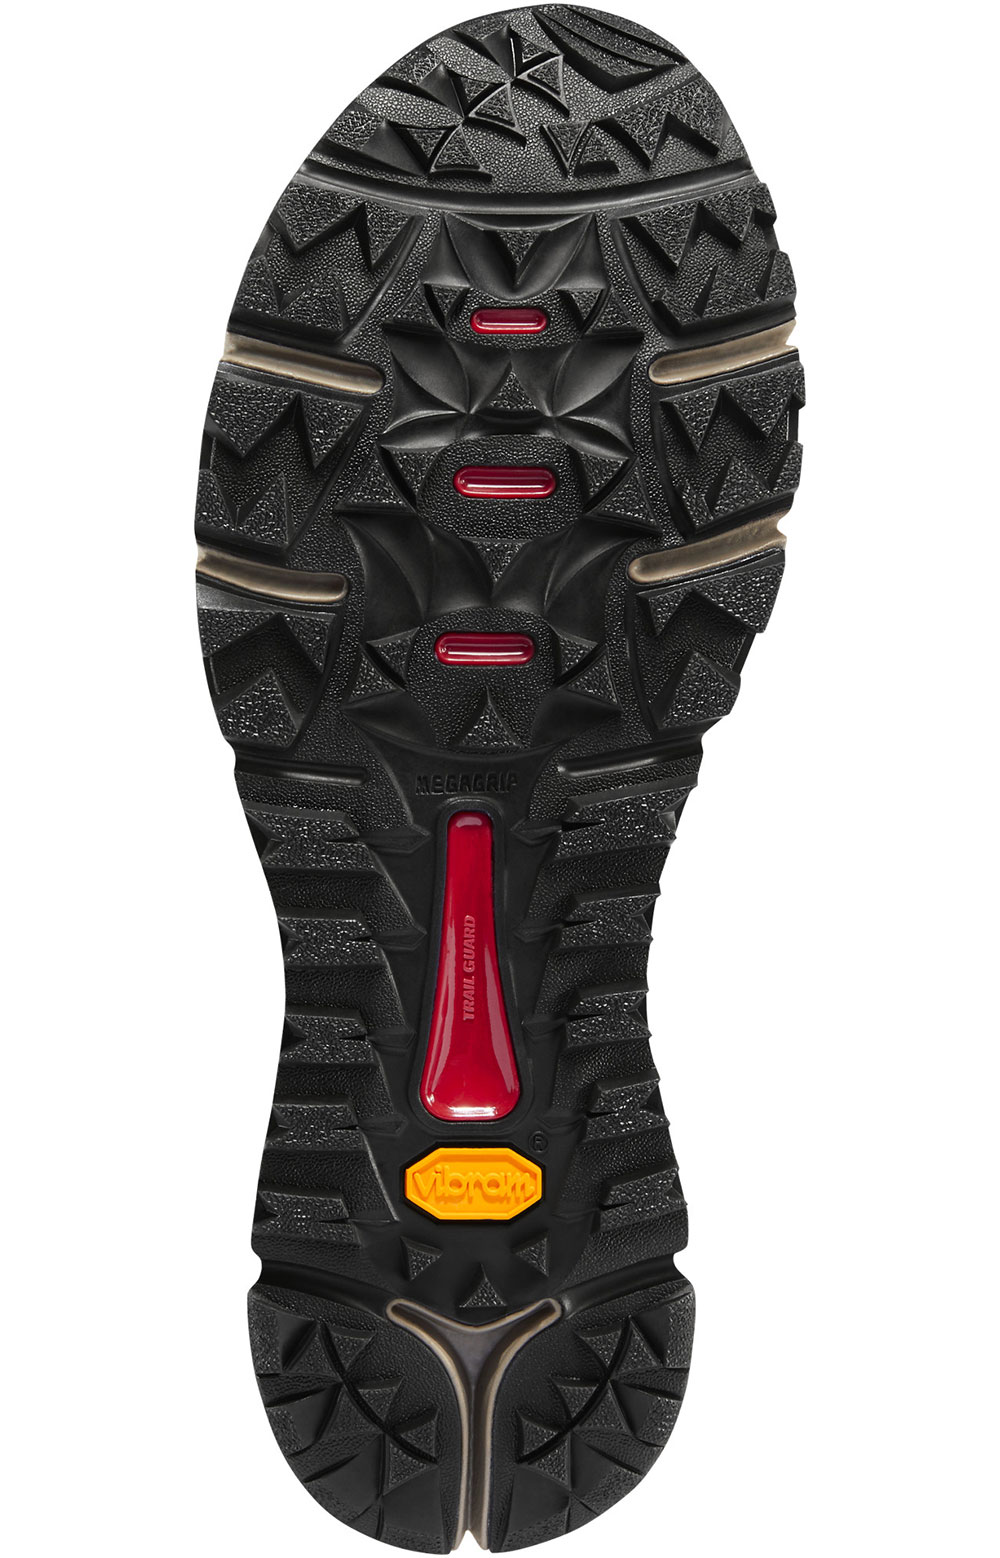 (61272) Trail 2650 Shoes - Brown/Red 3